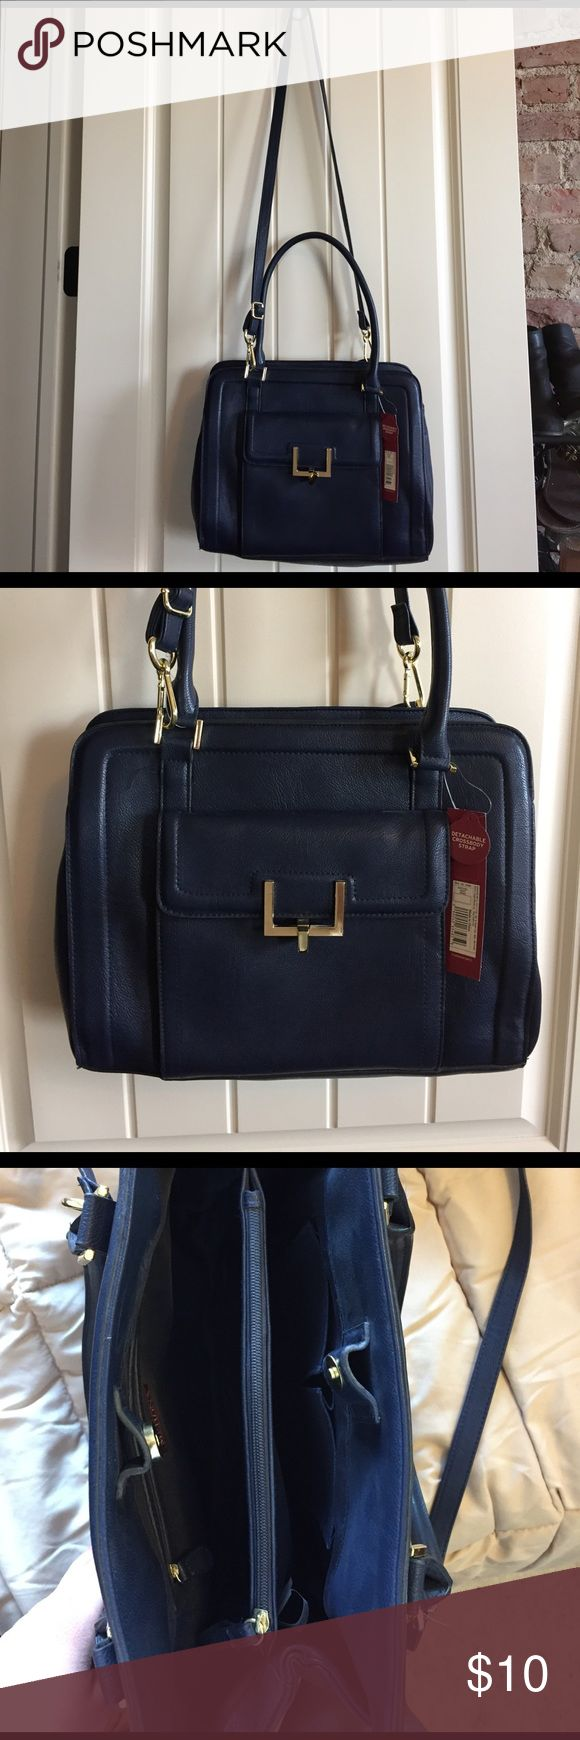 NWT Navy Purse Navy purse with detachable crossbody strap. Never been used, tags still attached! Gold details. Inside zippered divider. Merona Bags